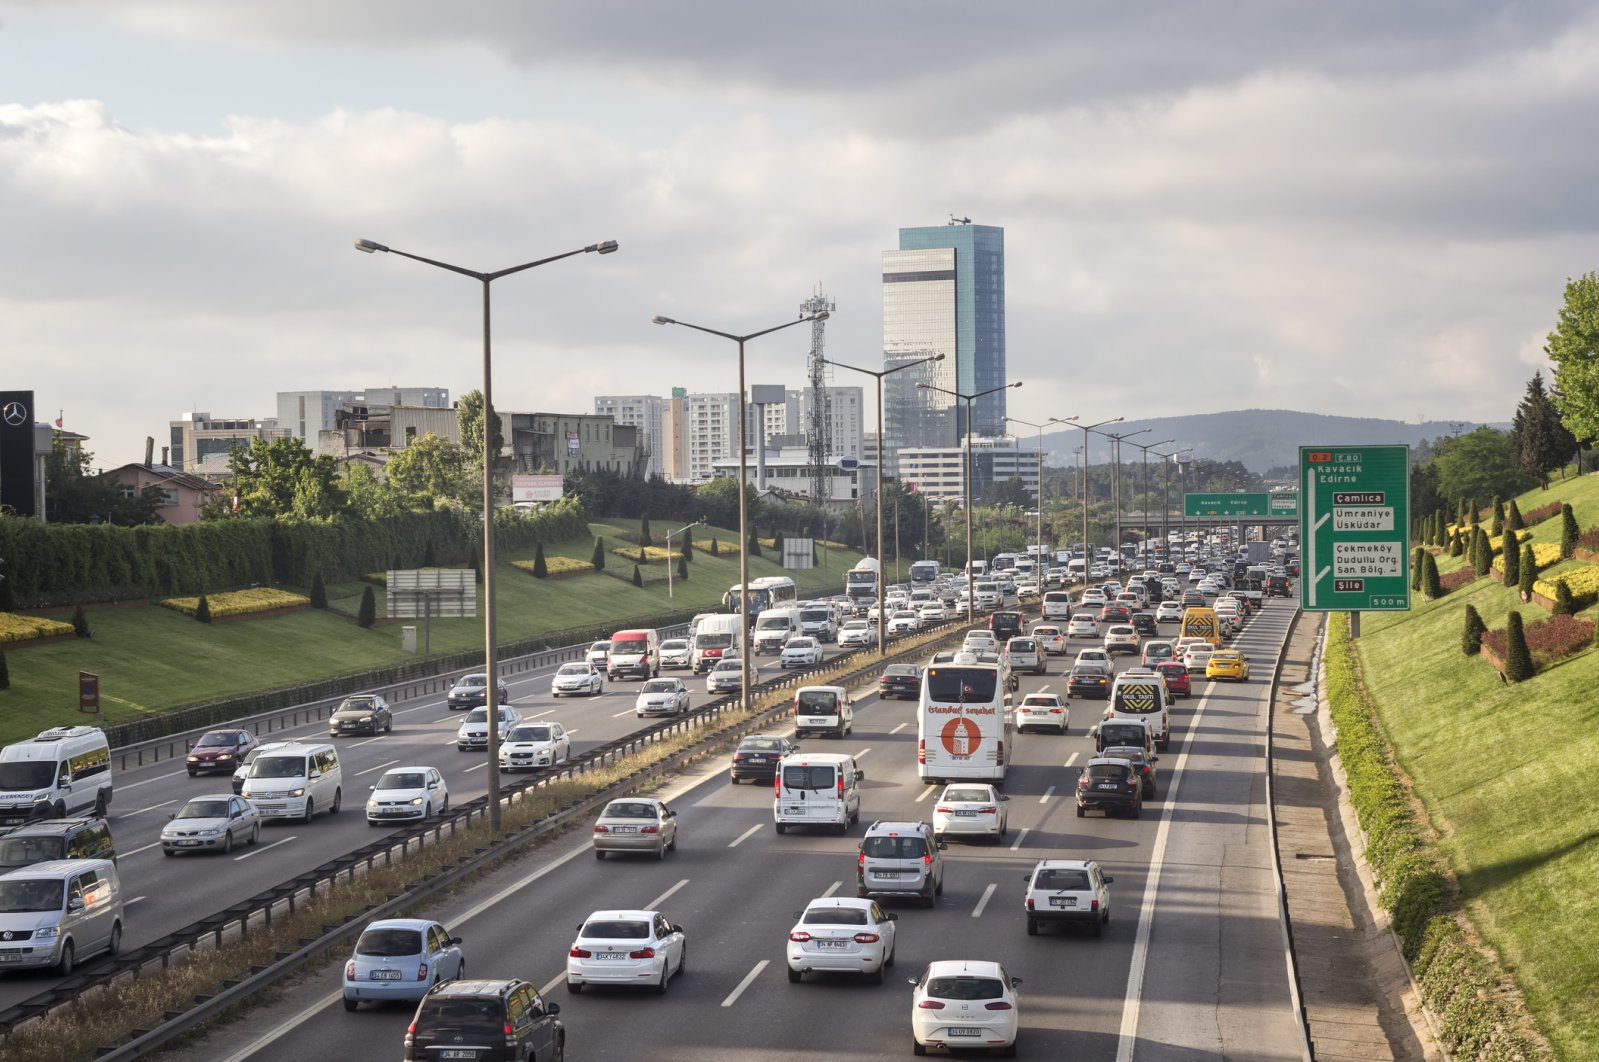 Traffic flows smoothly on a highway in Turkey's metropolis Istanbul, May 15, 2017. (iStock Photo)